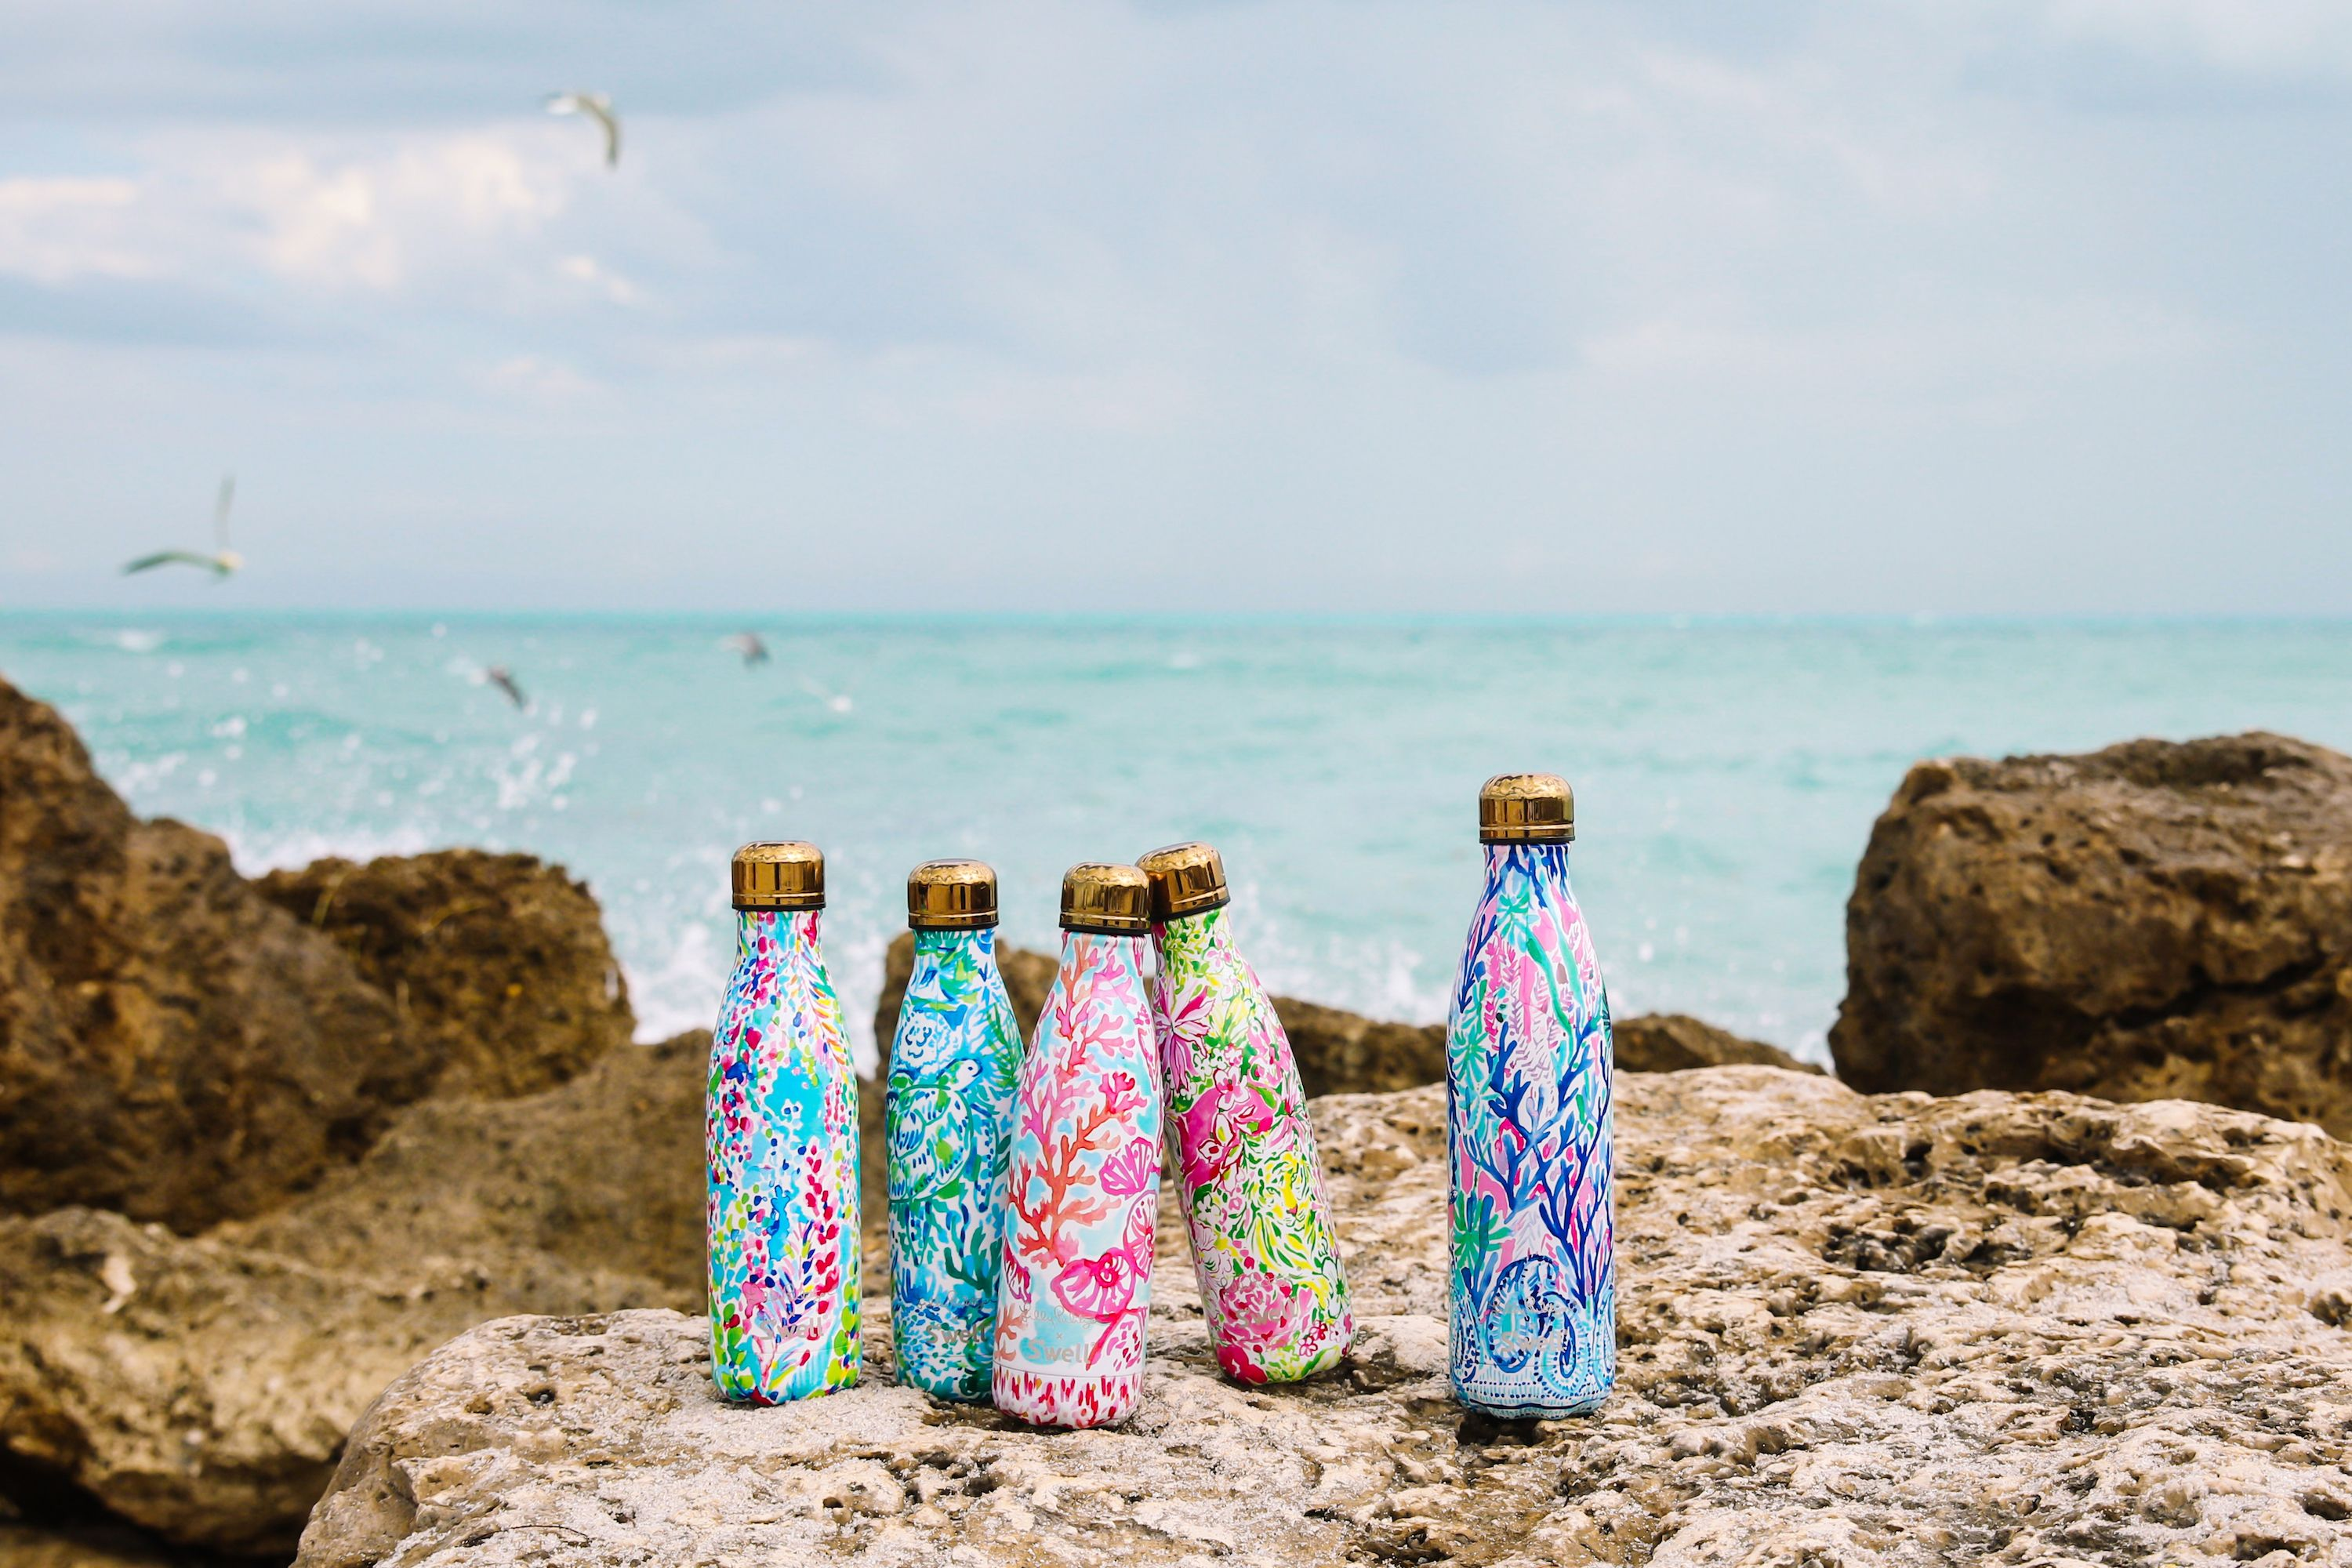 11a60e52e1 Lilly Pulitzer Just Launched a Limited Edition Collection of S'Well Water  Bottles